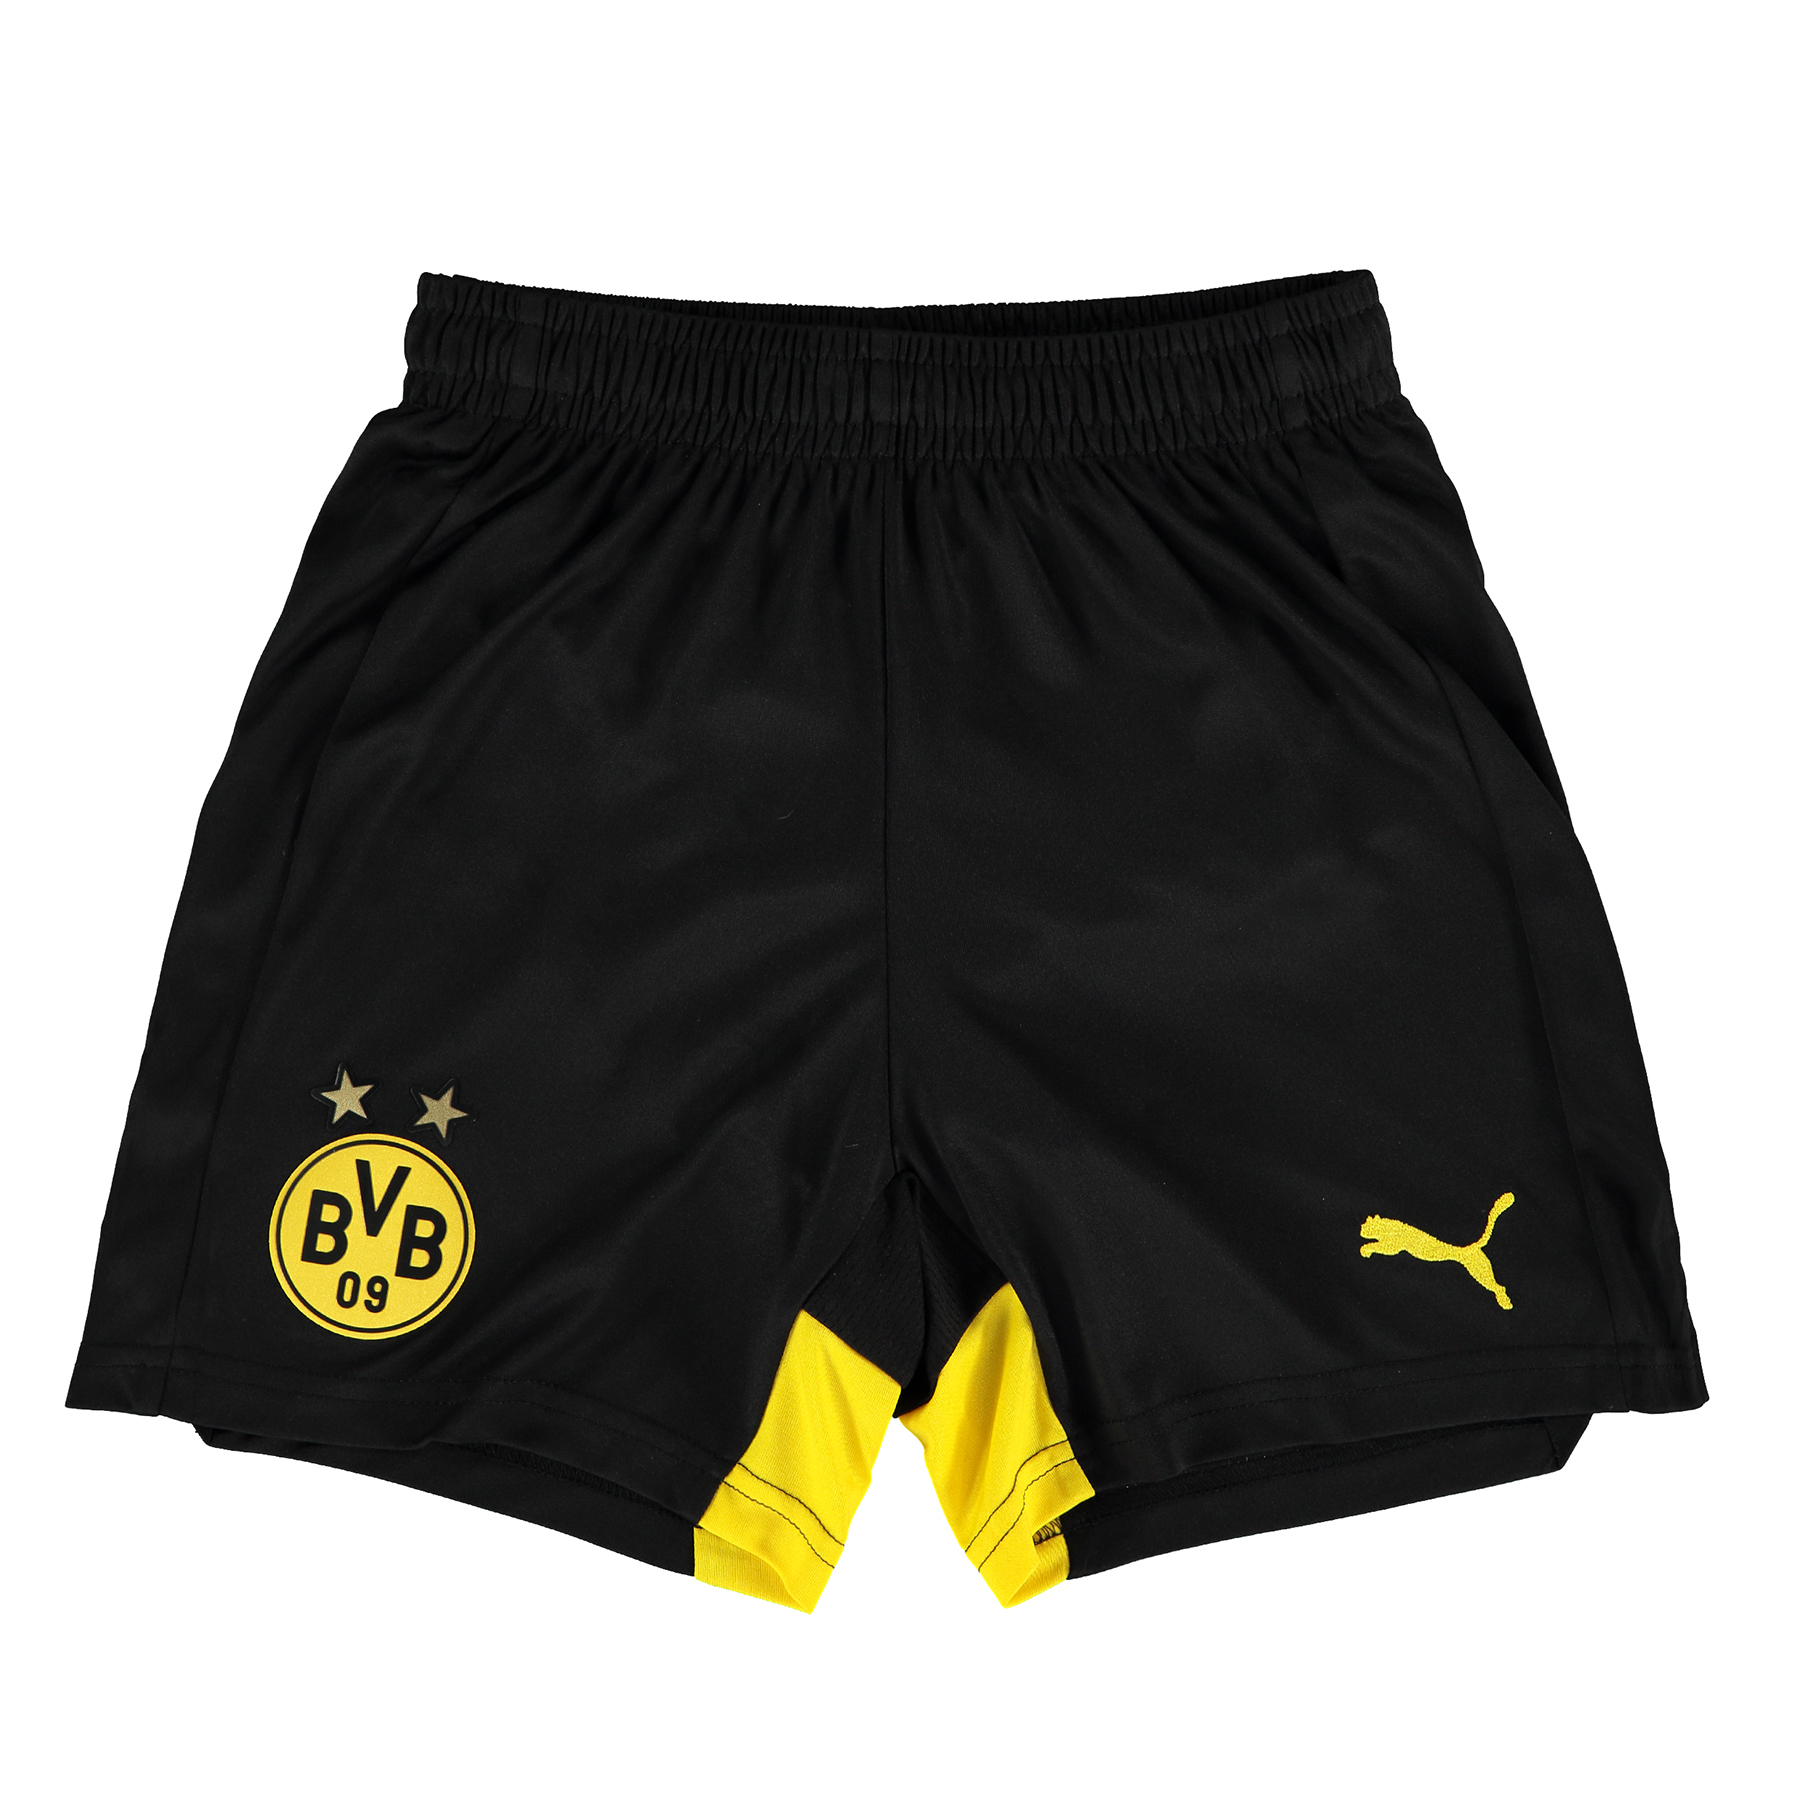 BVB Home/Away Shorts 2015/16 – Kids Black